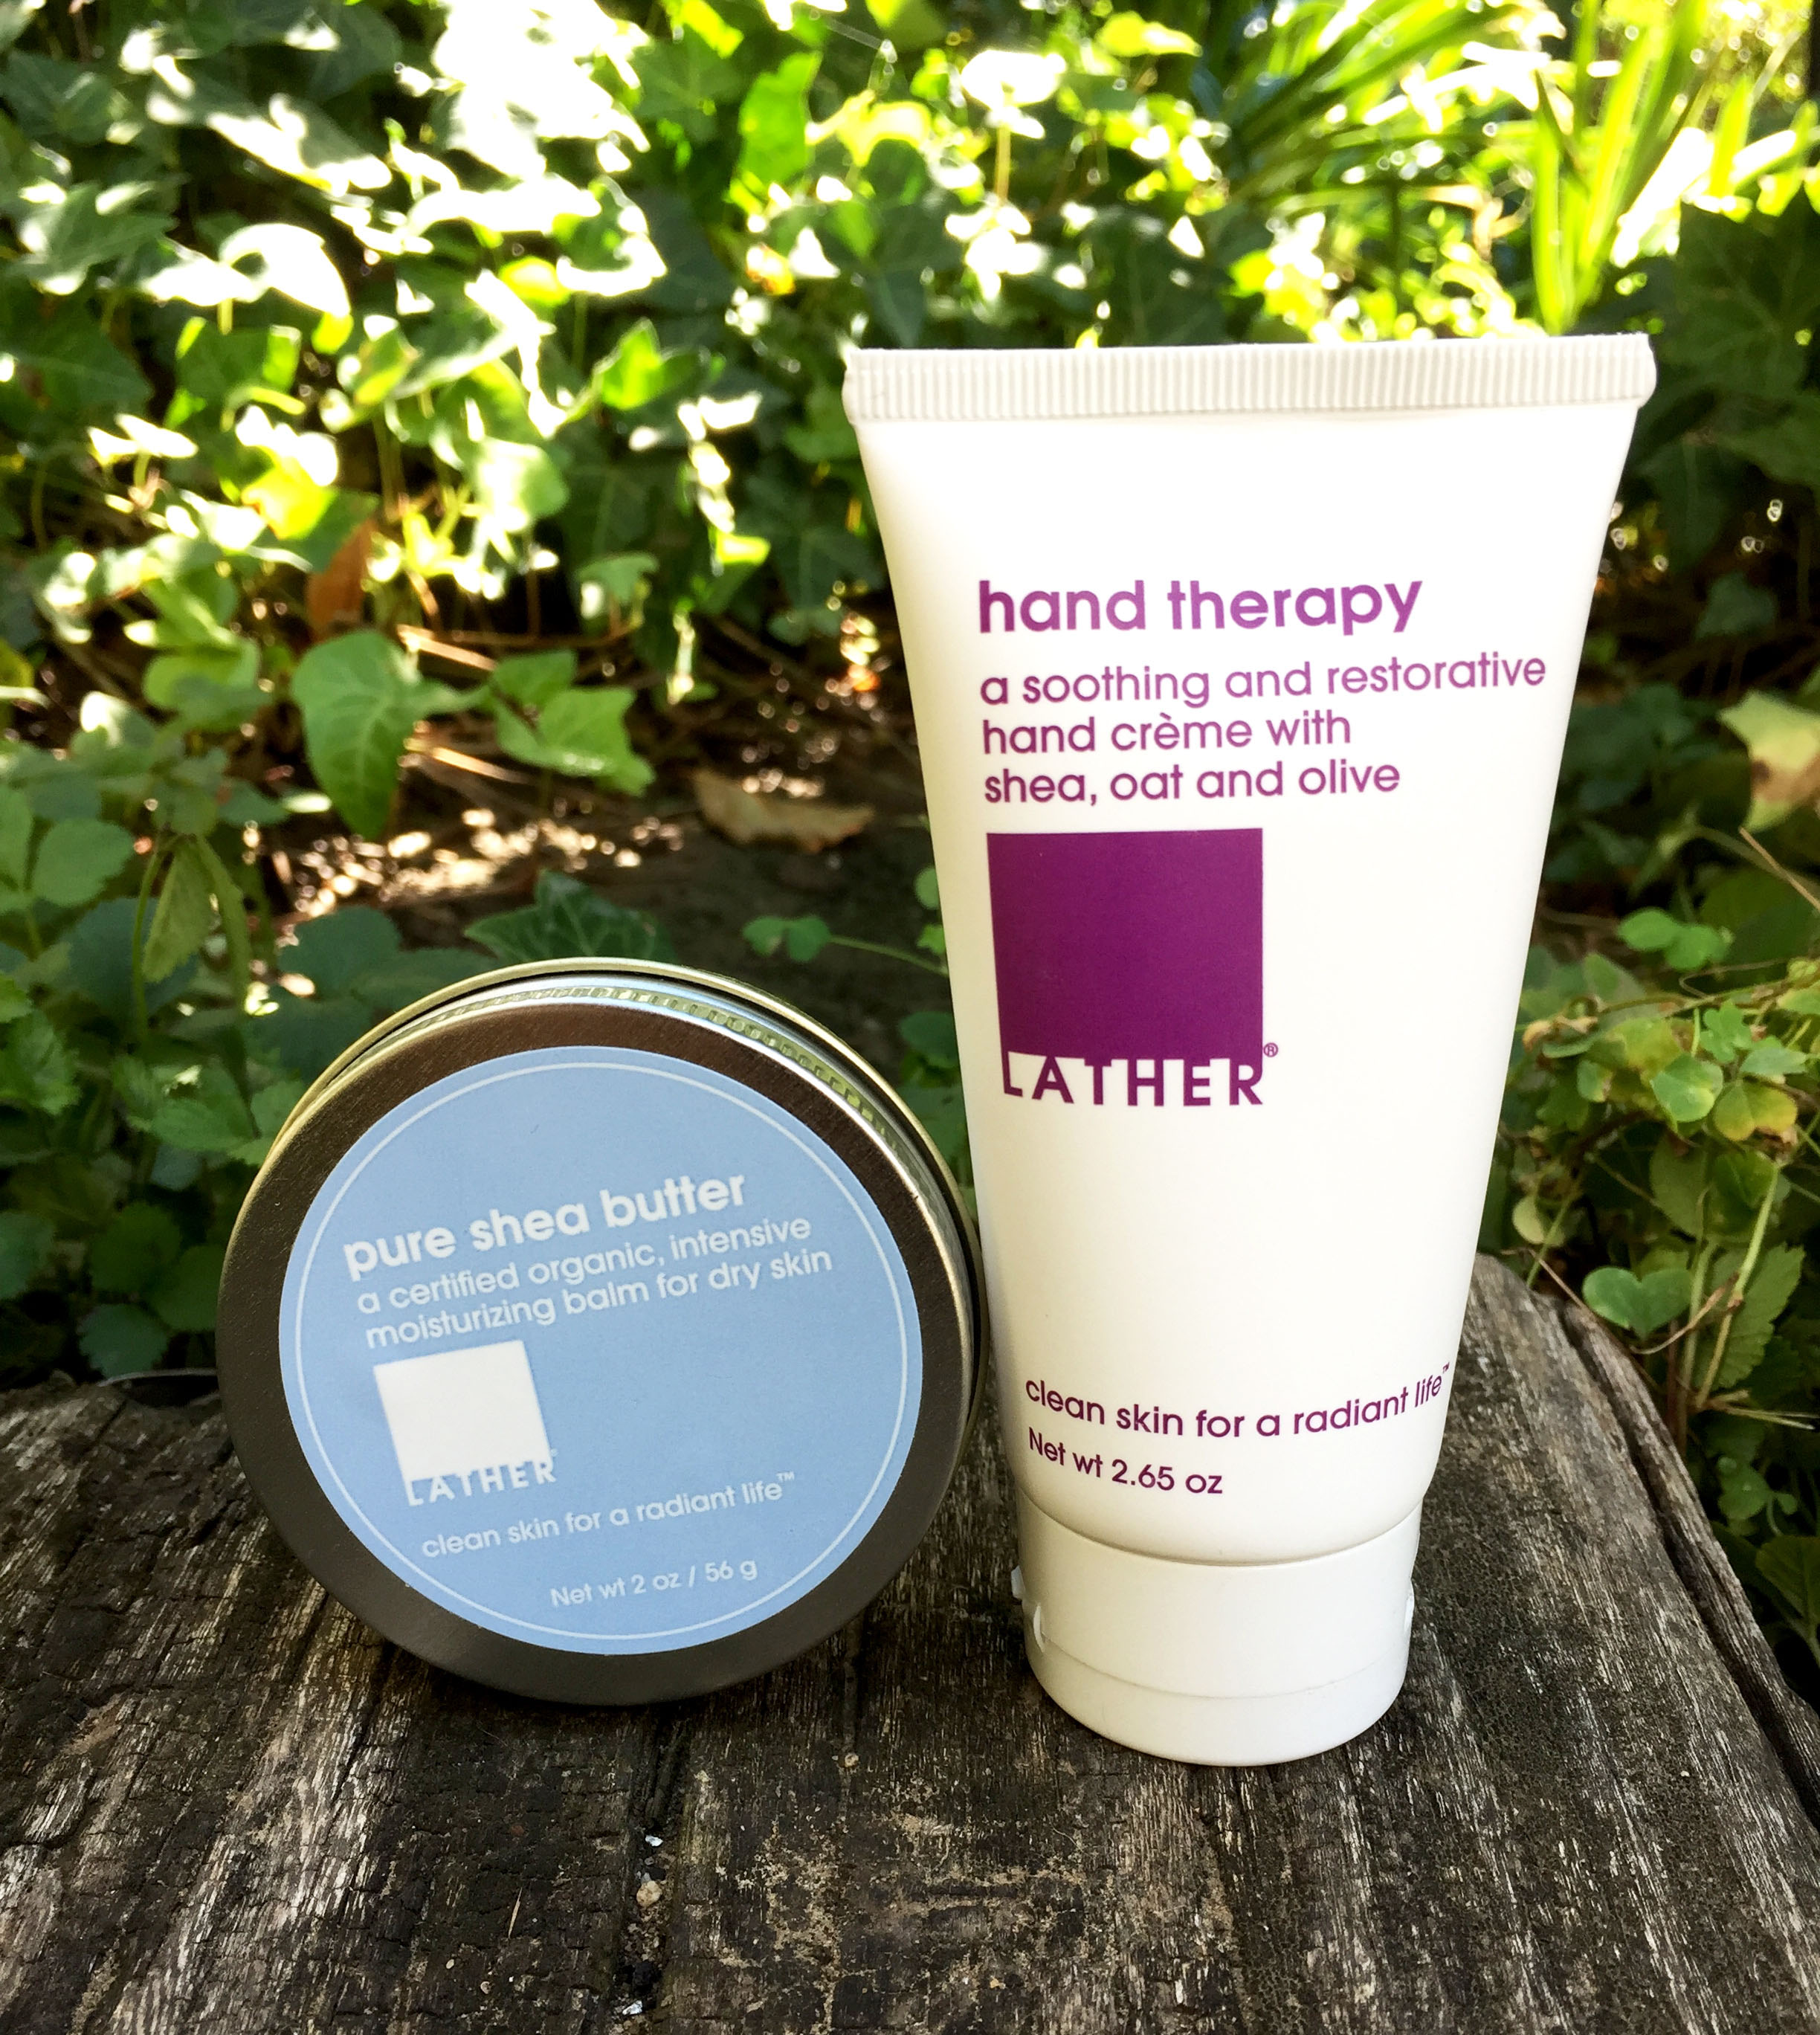 Lather shea butter & hand therapy